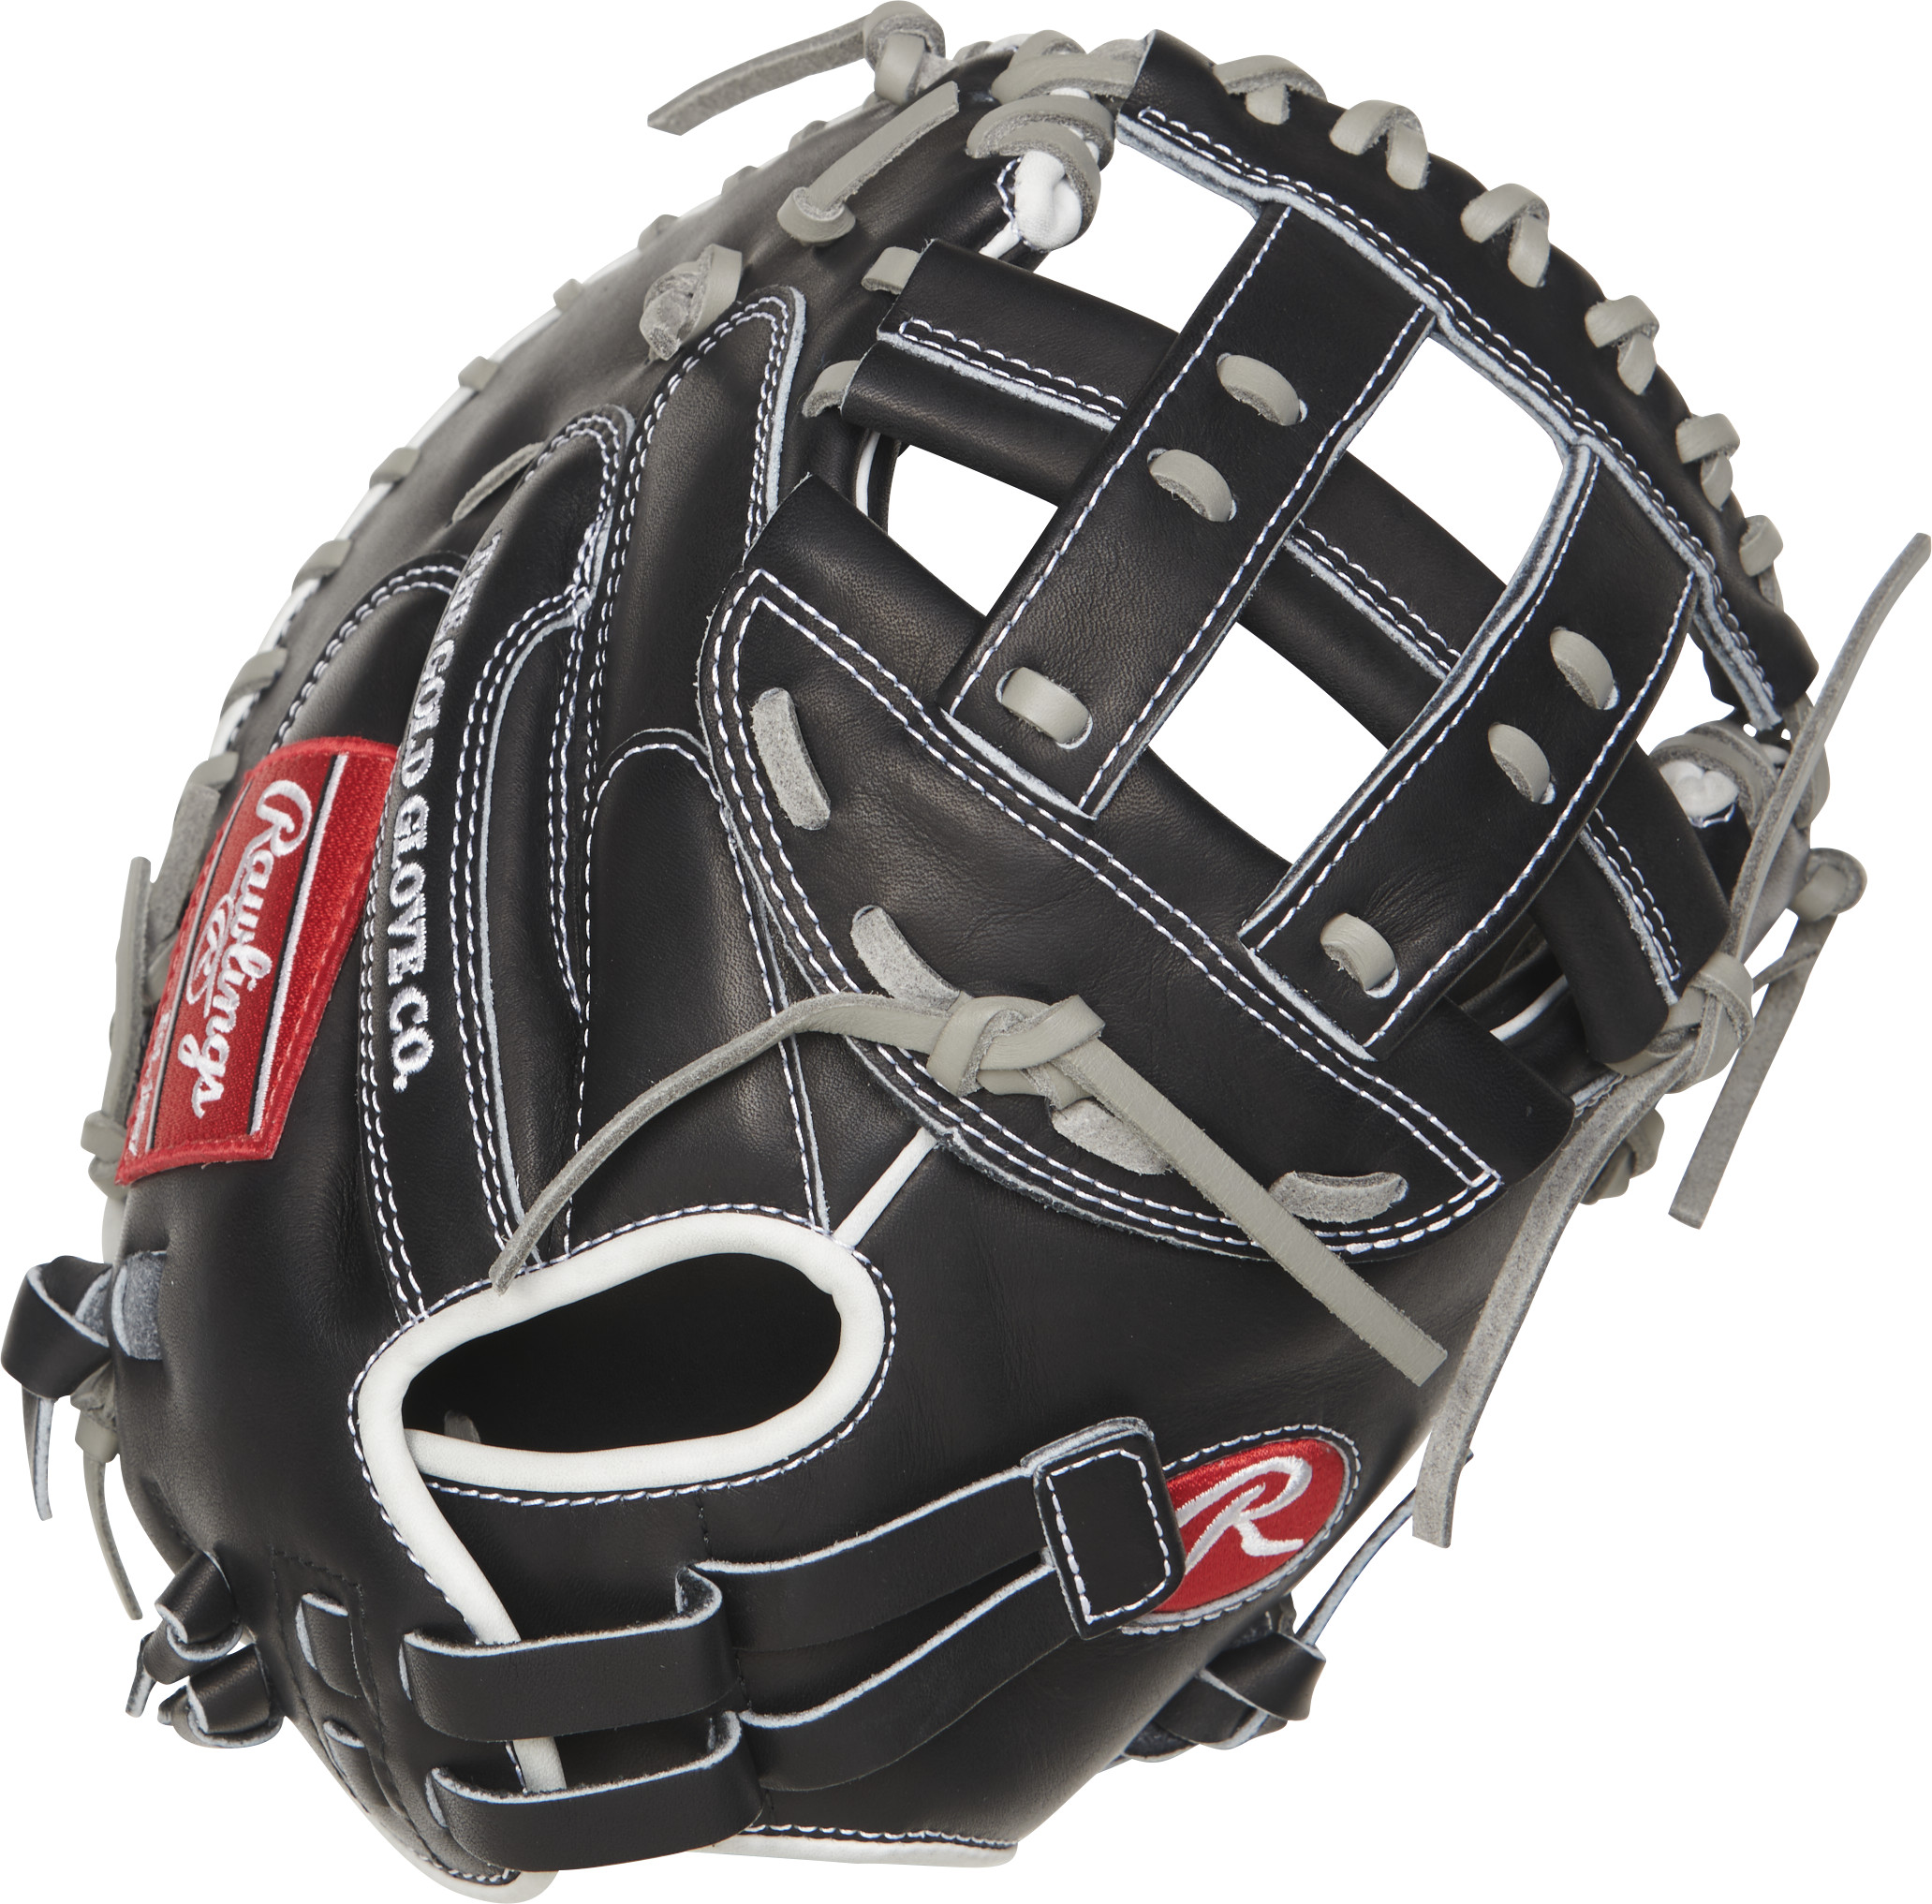 http://www.bestbatdeals.com/images/gloves/rawlings/PROCM33FP-24BG-2.jpg